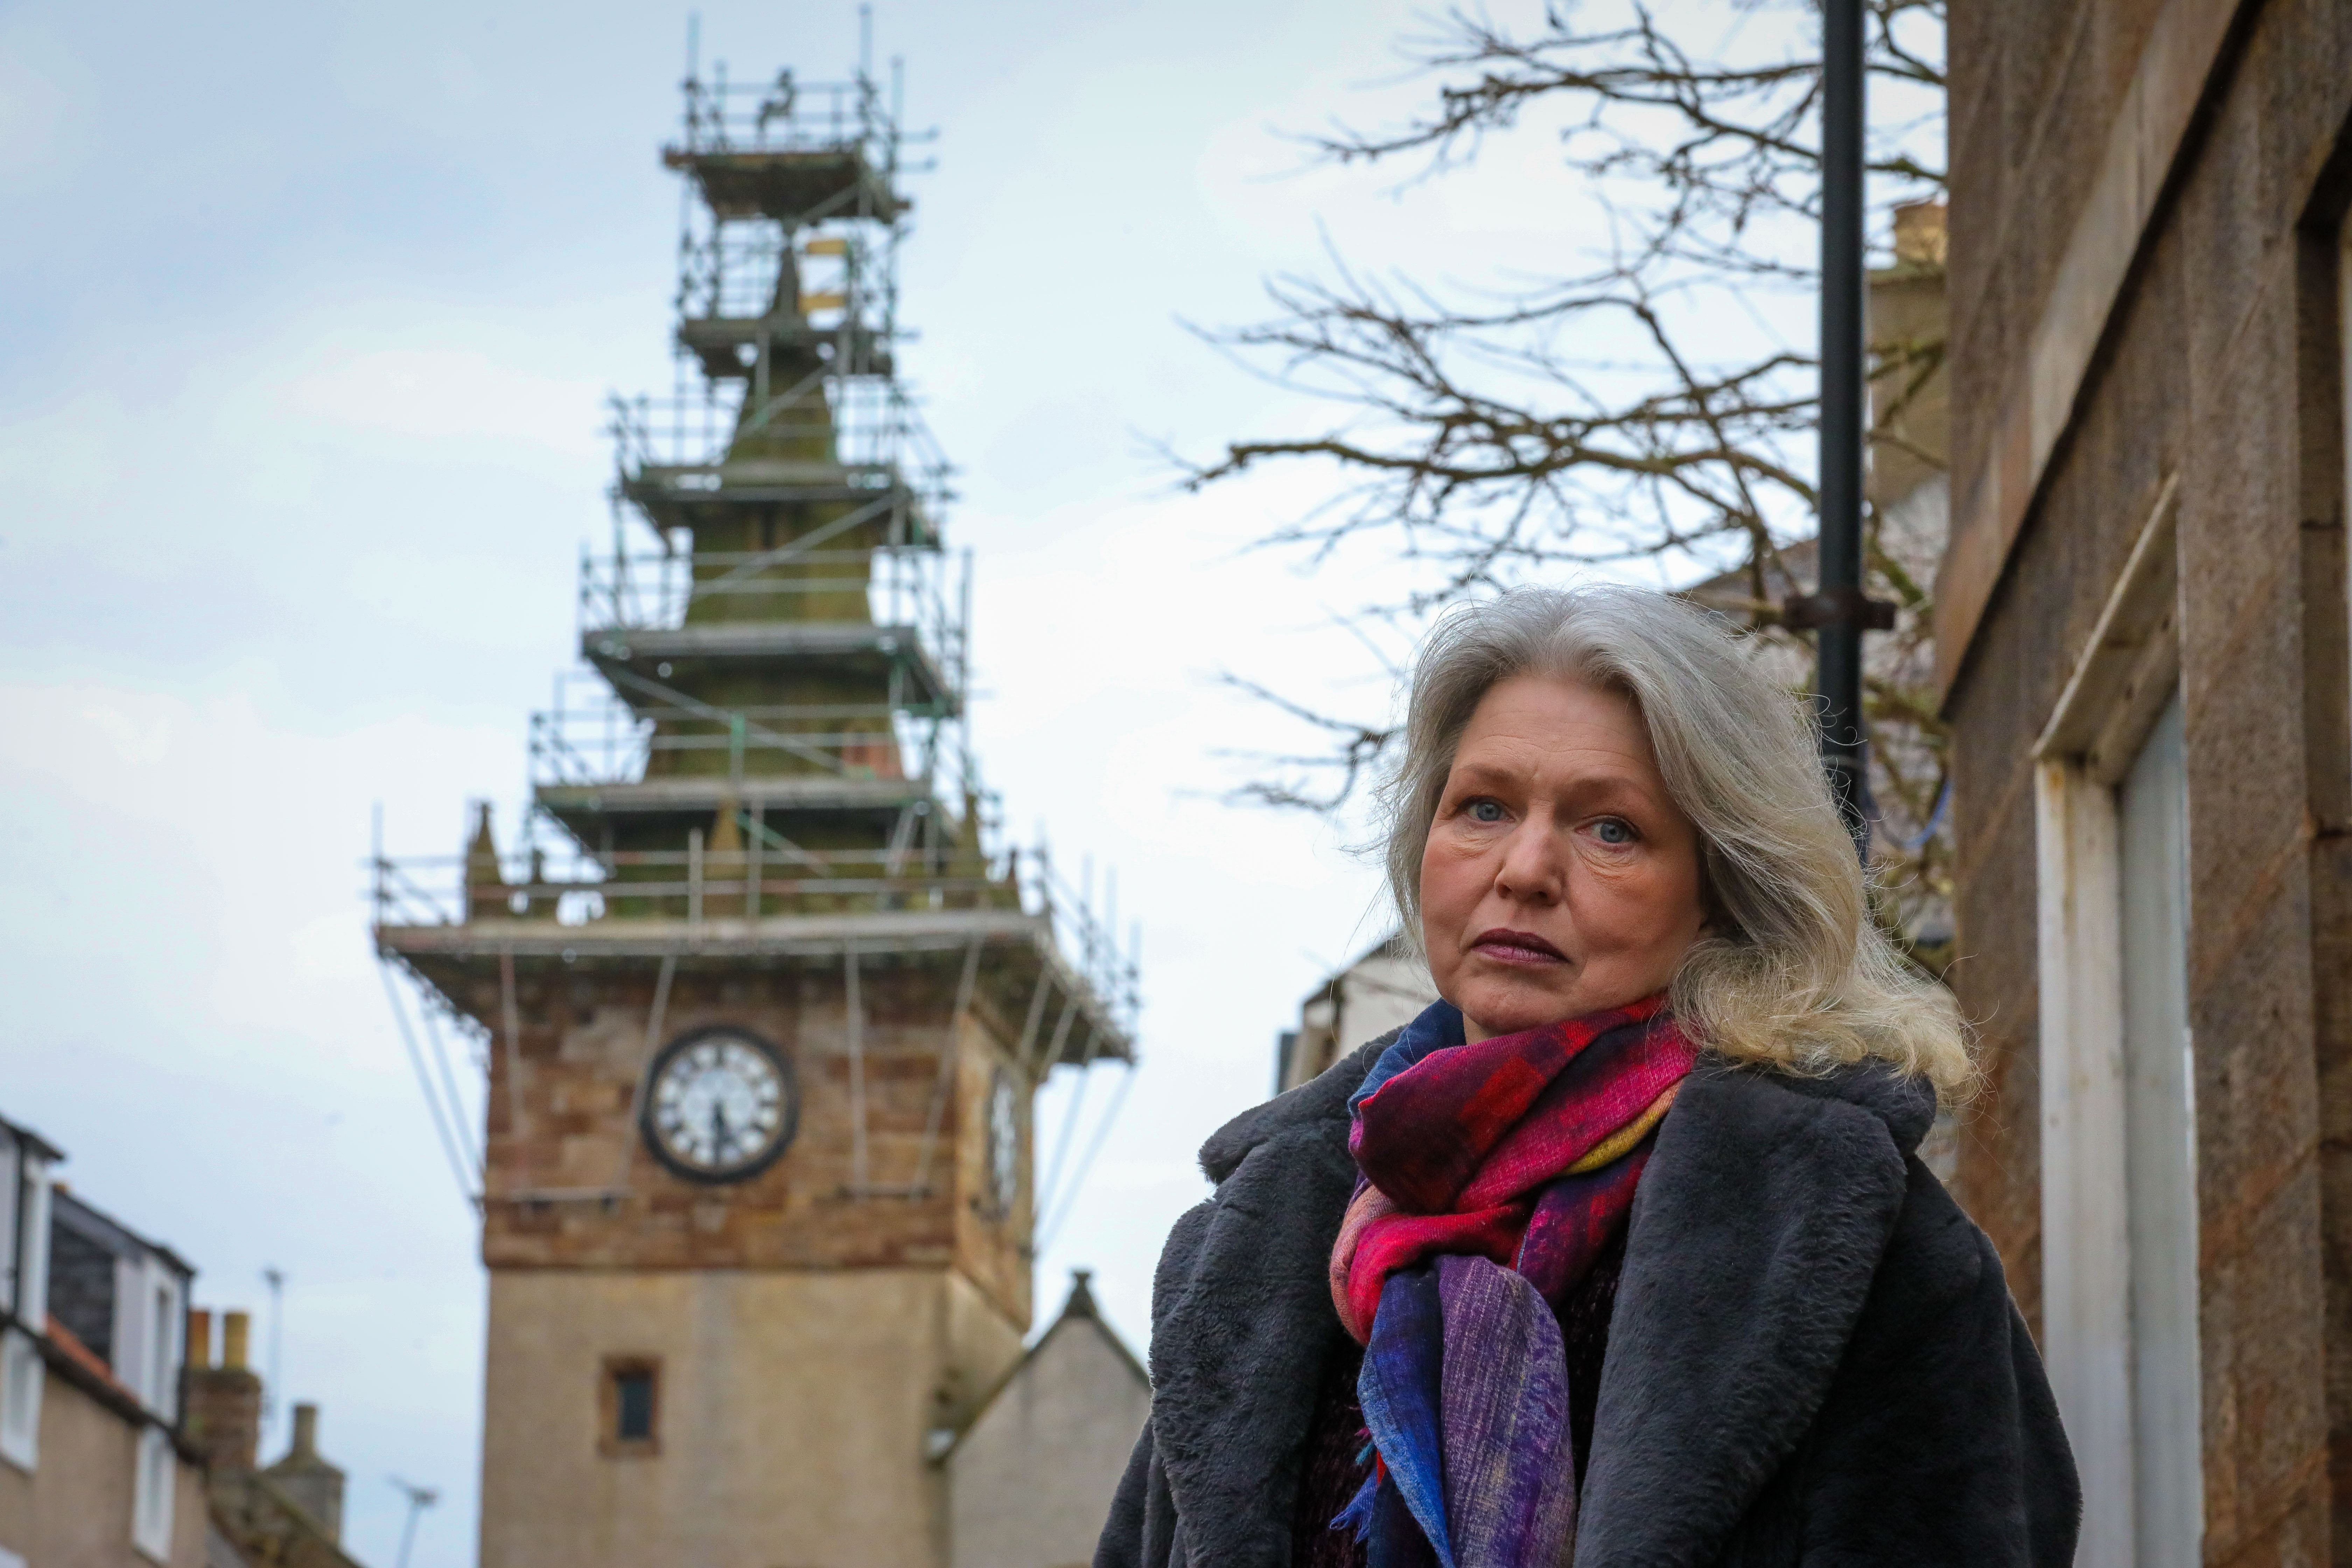 Cllr Linda Holt has accused Fife Council of mismanaging community assets such as Pittenweem clock tower.